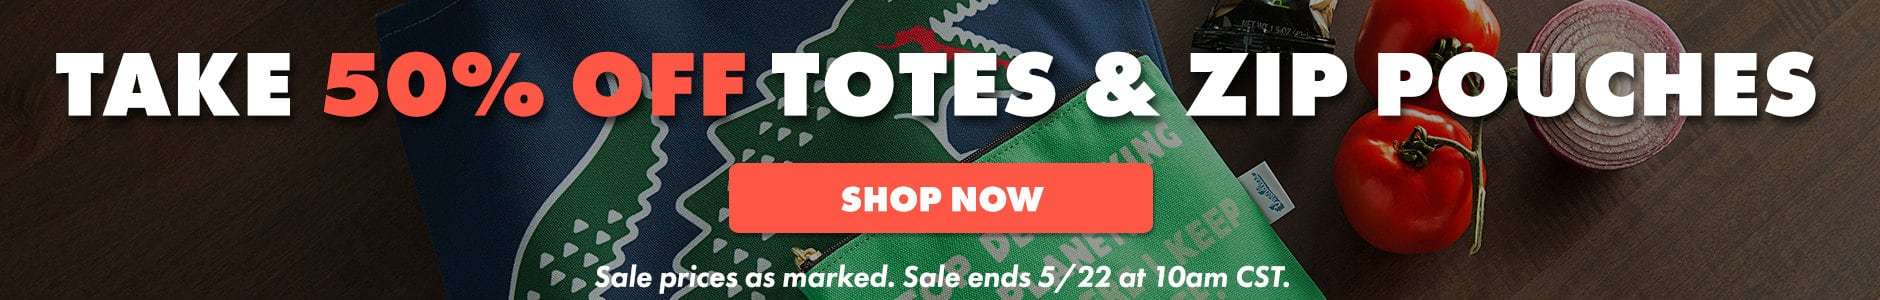 Take 50% off totes & zip pouches. Shop now. Sale prices as marked. Sale ends 5/22 at 10am CST.